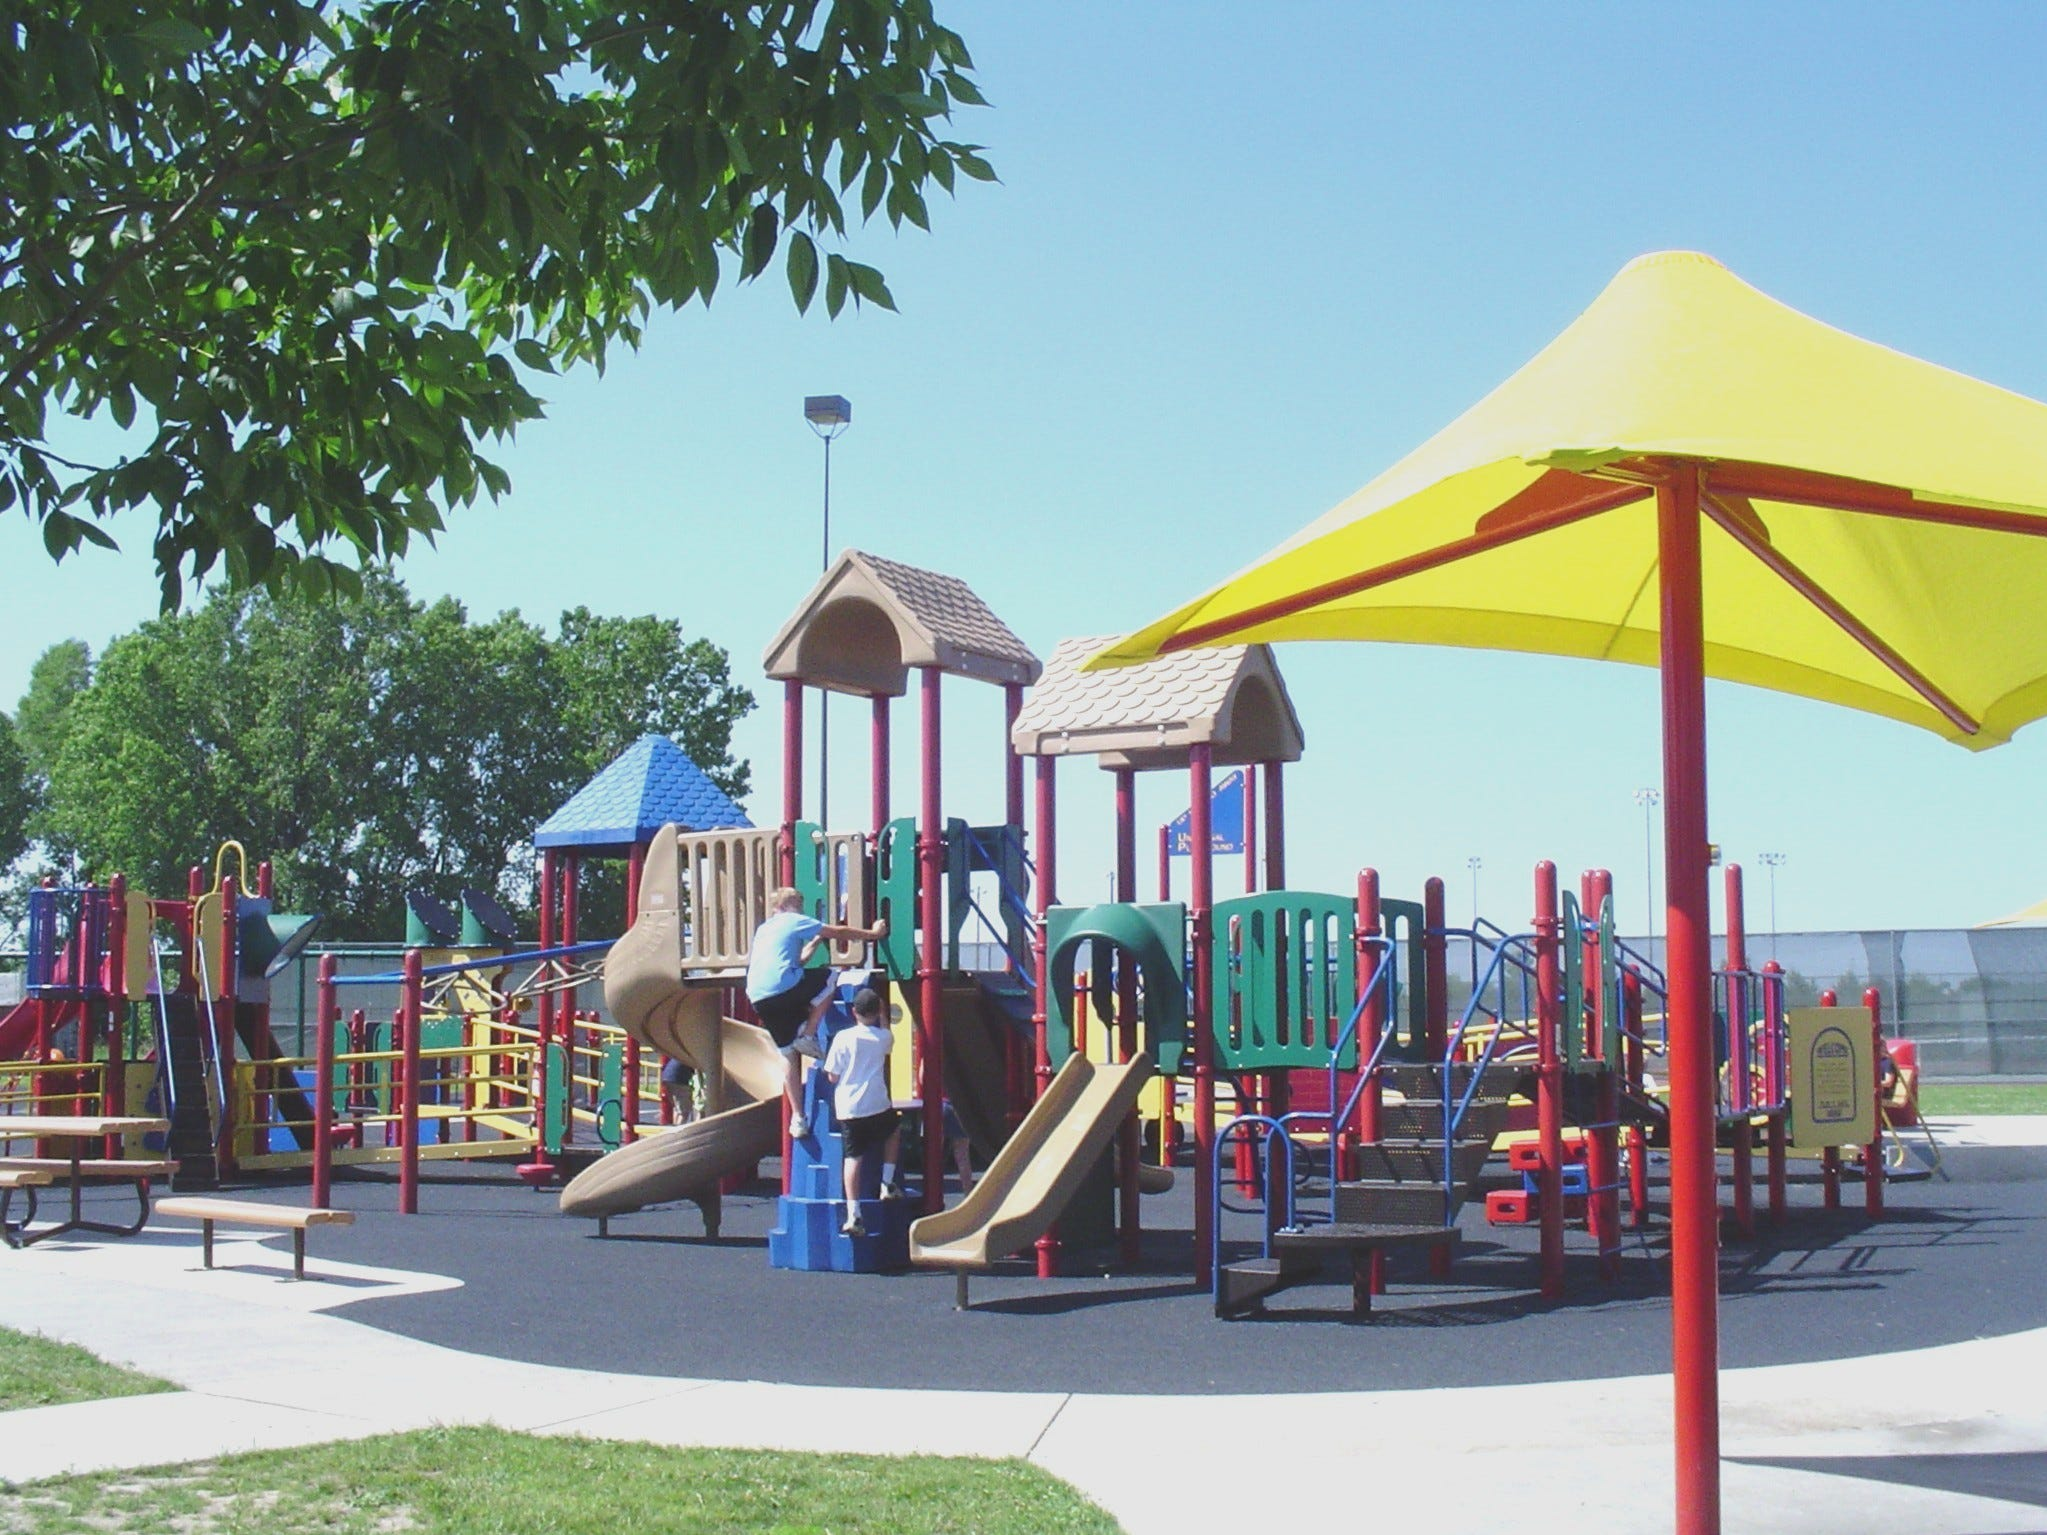 Appleton Memorial Park has an accessible playground.